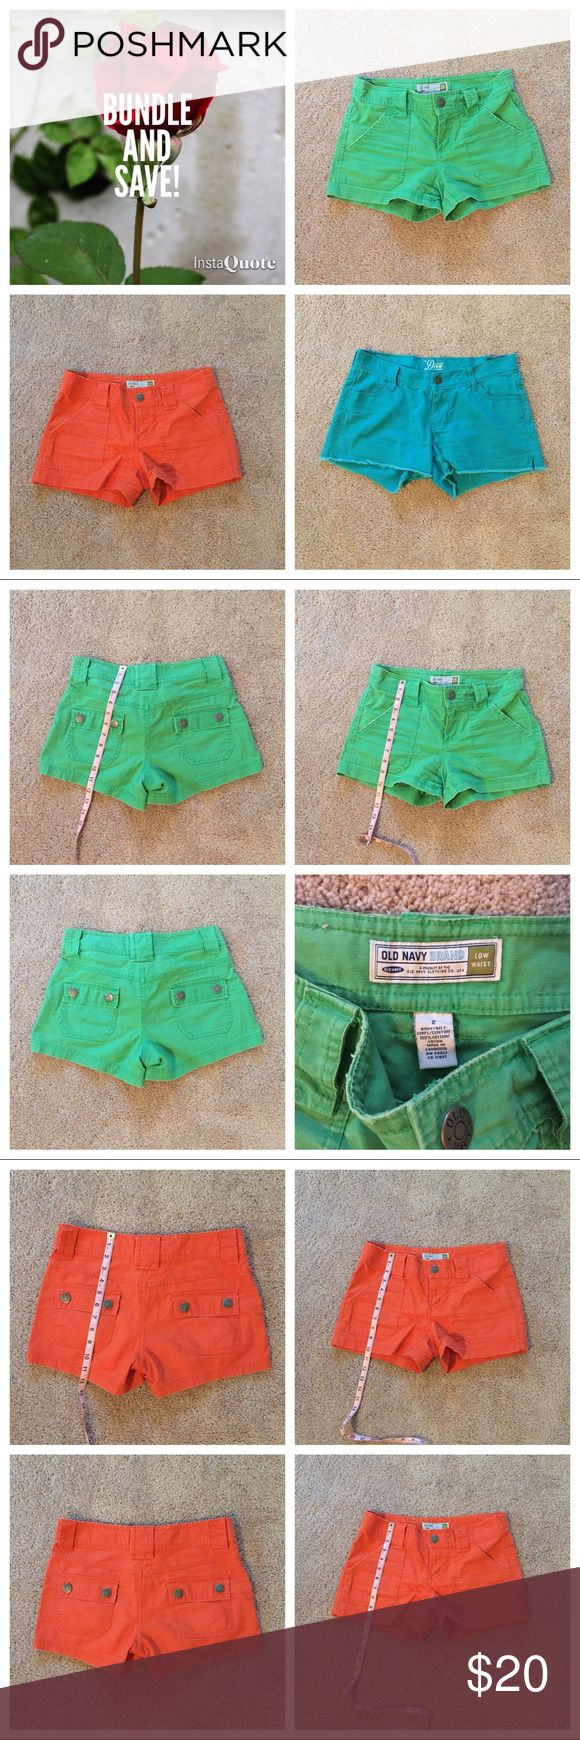 Old Navy Shorts Bundle 3 pairs of shorts - Old Navy The Diva Turquoise Short, Old Navy Low Waist Green Short, Old Navy Low Waist Orange Short. Please check separate listings for more information. Old Navy Shorts